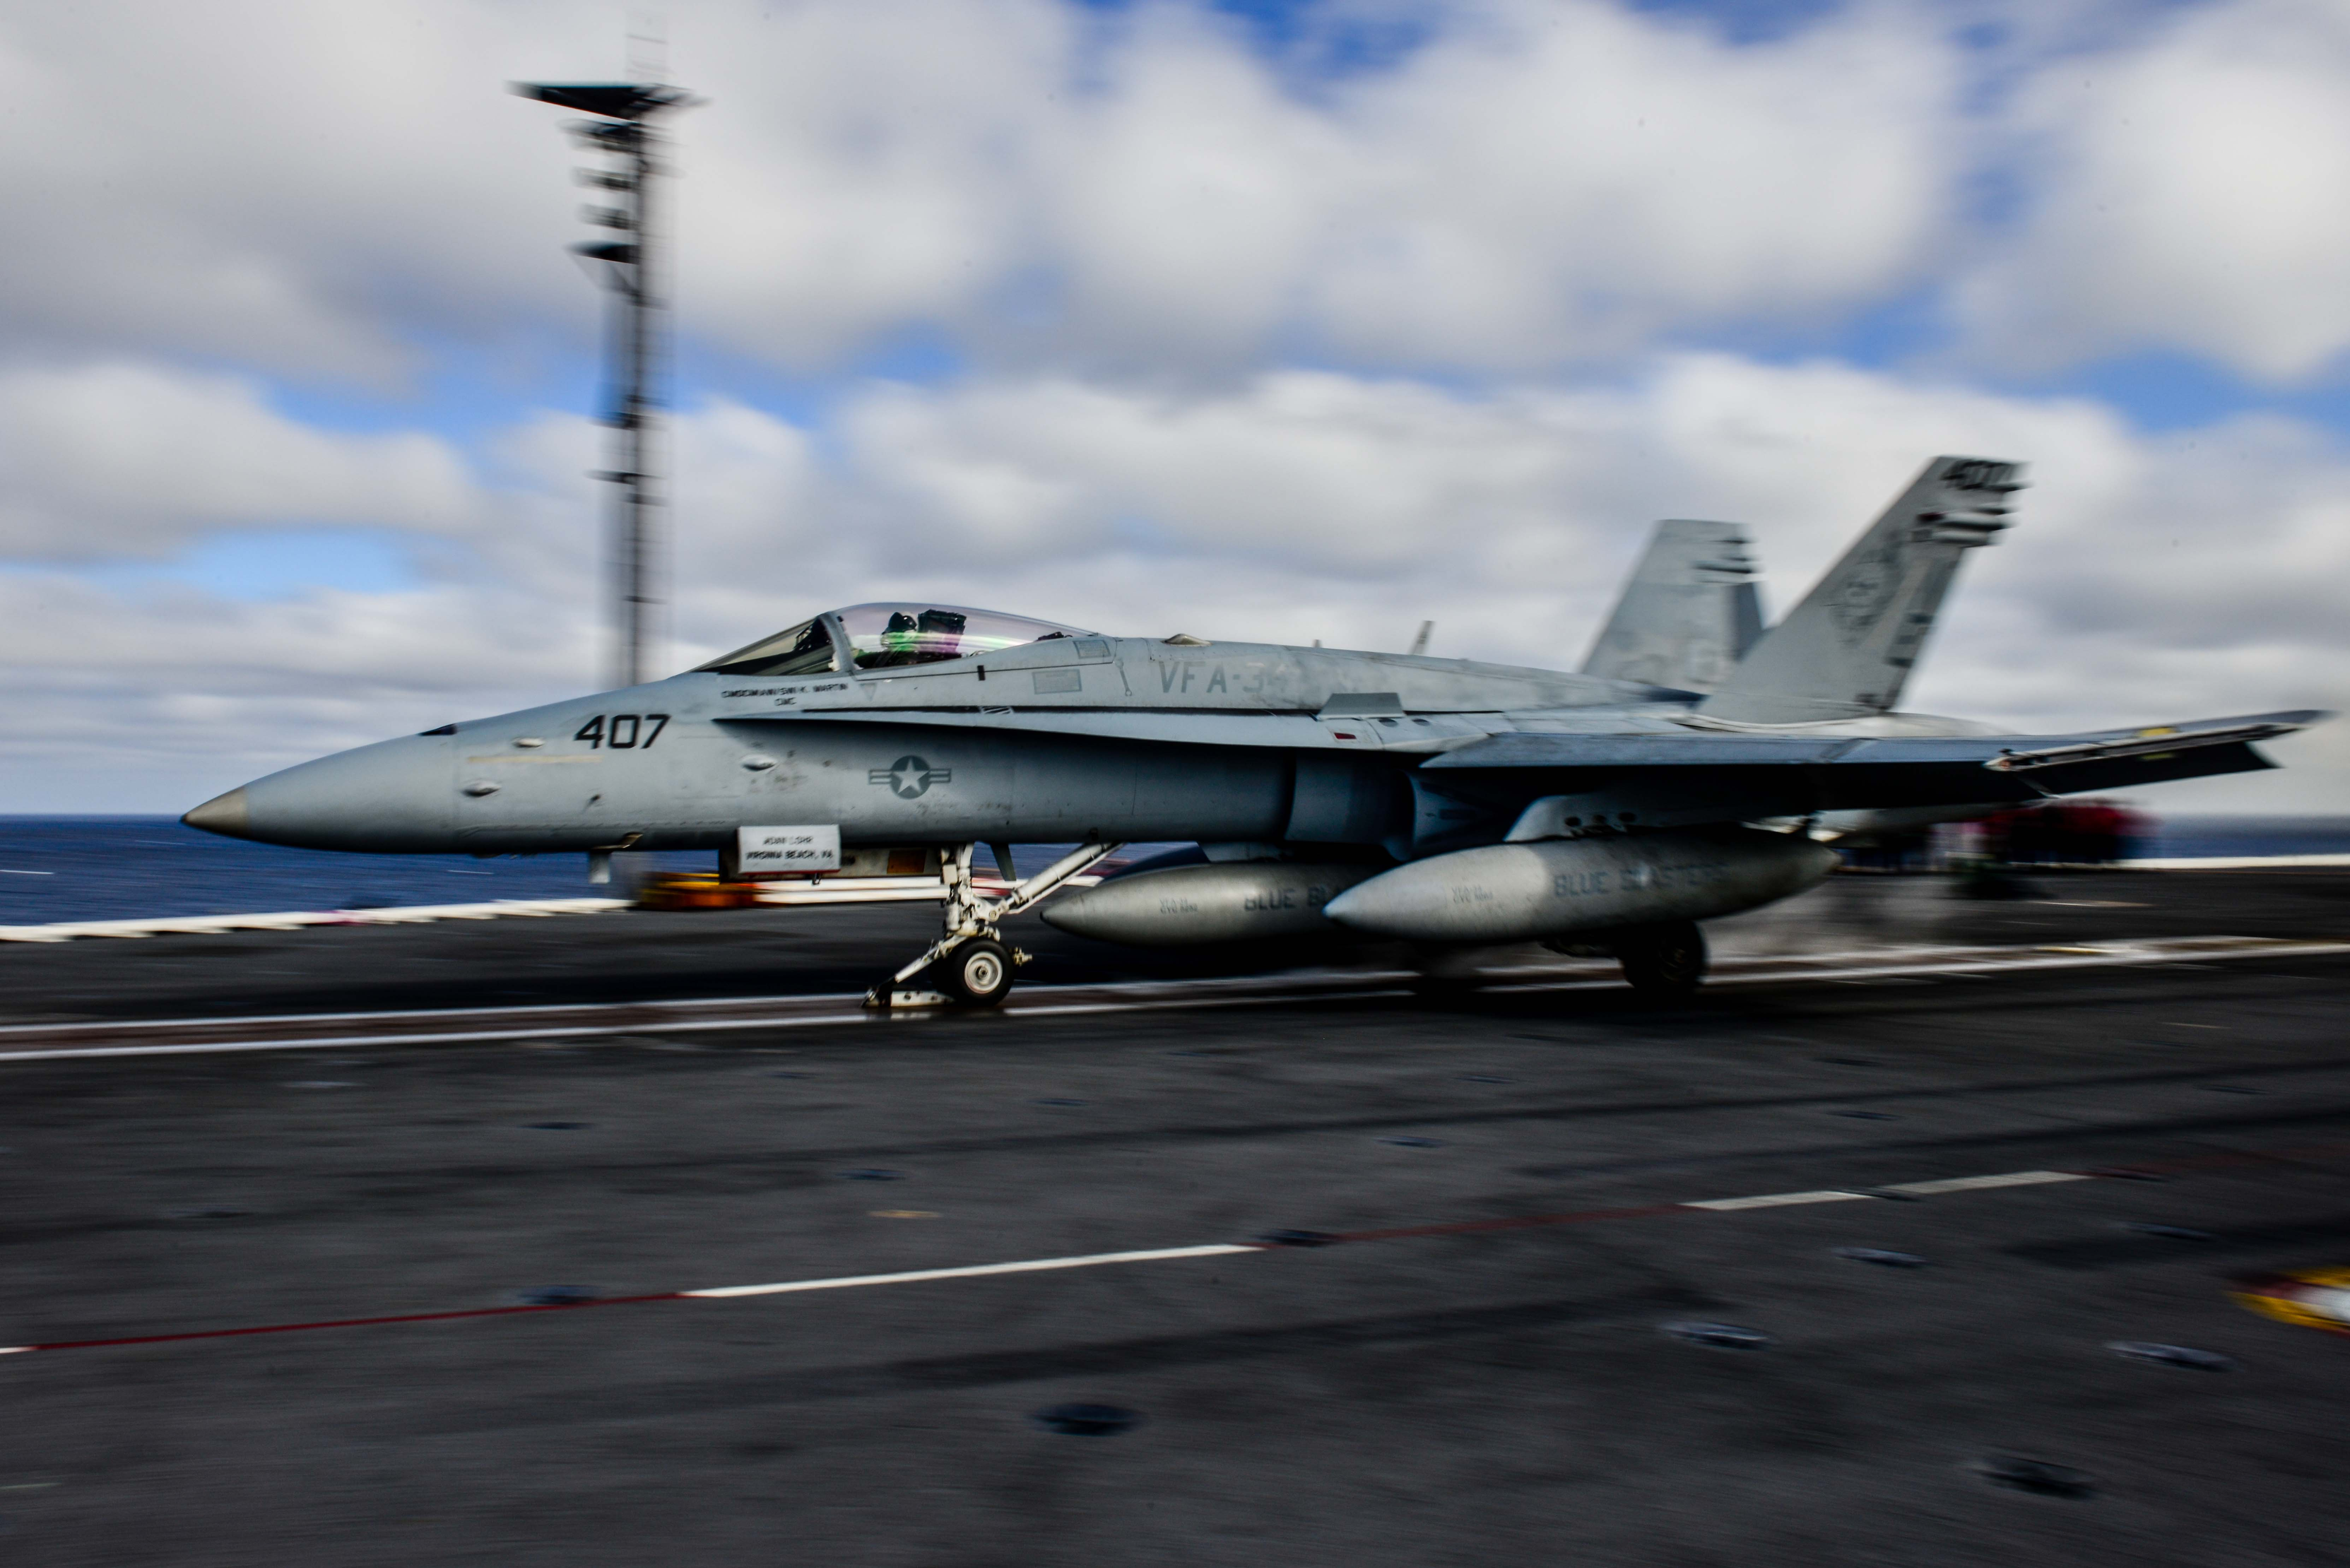 PACIFIC OCEAN (Dec. 9, 2014) An F/A-18C Hornet from the Blue Blasters of Strike Fighter Squadron (VFA) 34 is the first aircraft to launch from the flight deck of the Nimitz-class aircraft carrier USS John C. Stennis (CVN 74) since April 2013. John C. Stennis is undergoing an operational training period in preparation for future deployments. (U.S. Navy photo by Mass Communication Specialist 3rd Class Ignacio D. Perez/Released)